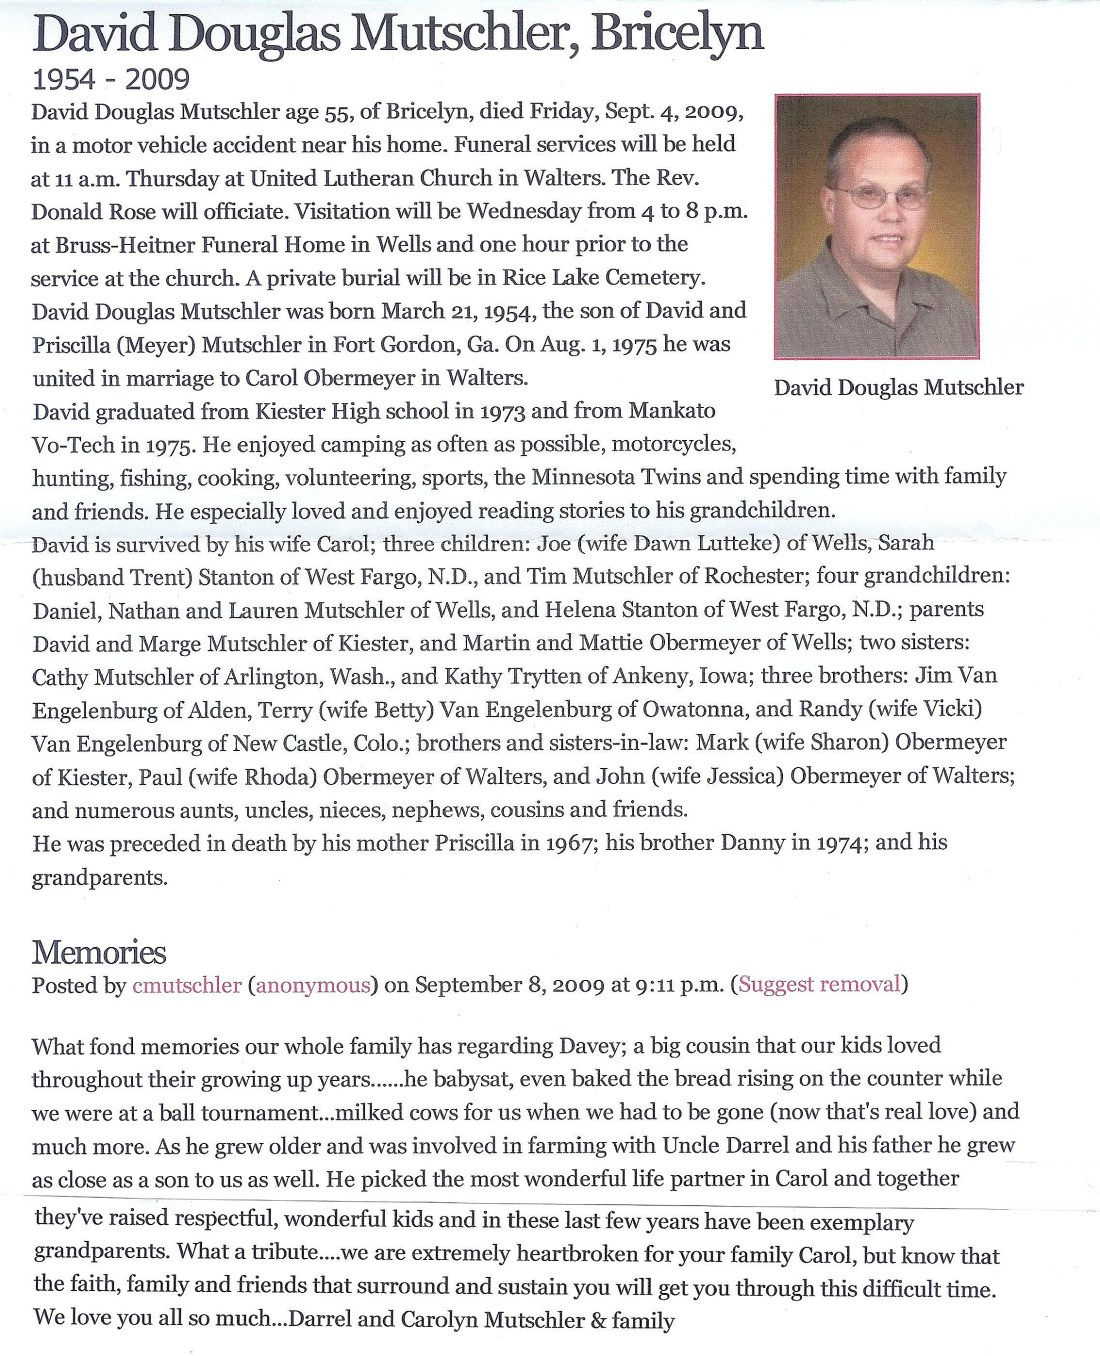 David D. Mutschler obituary Sept. 4, 2009